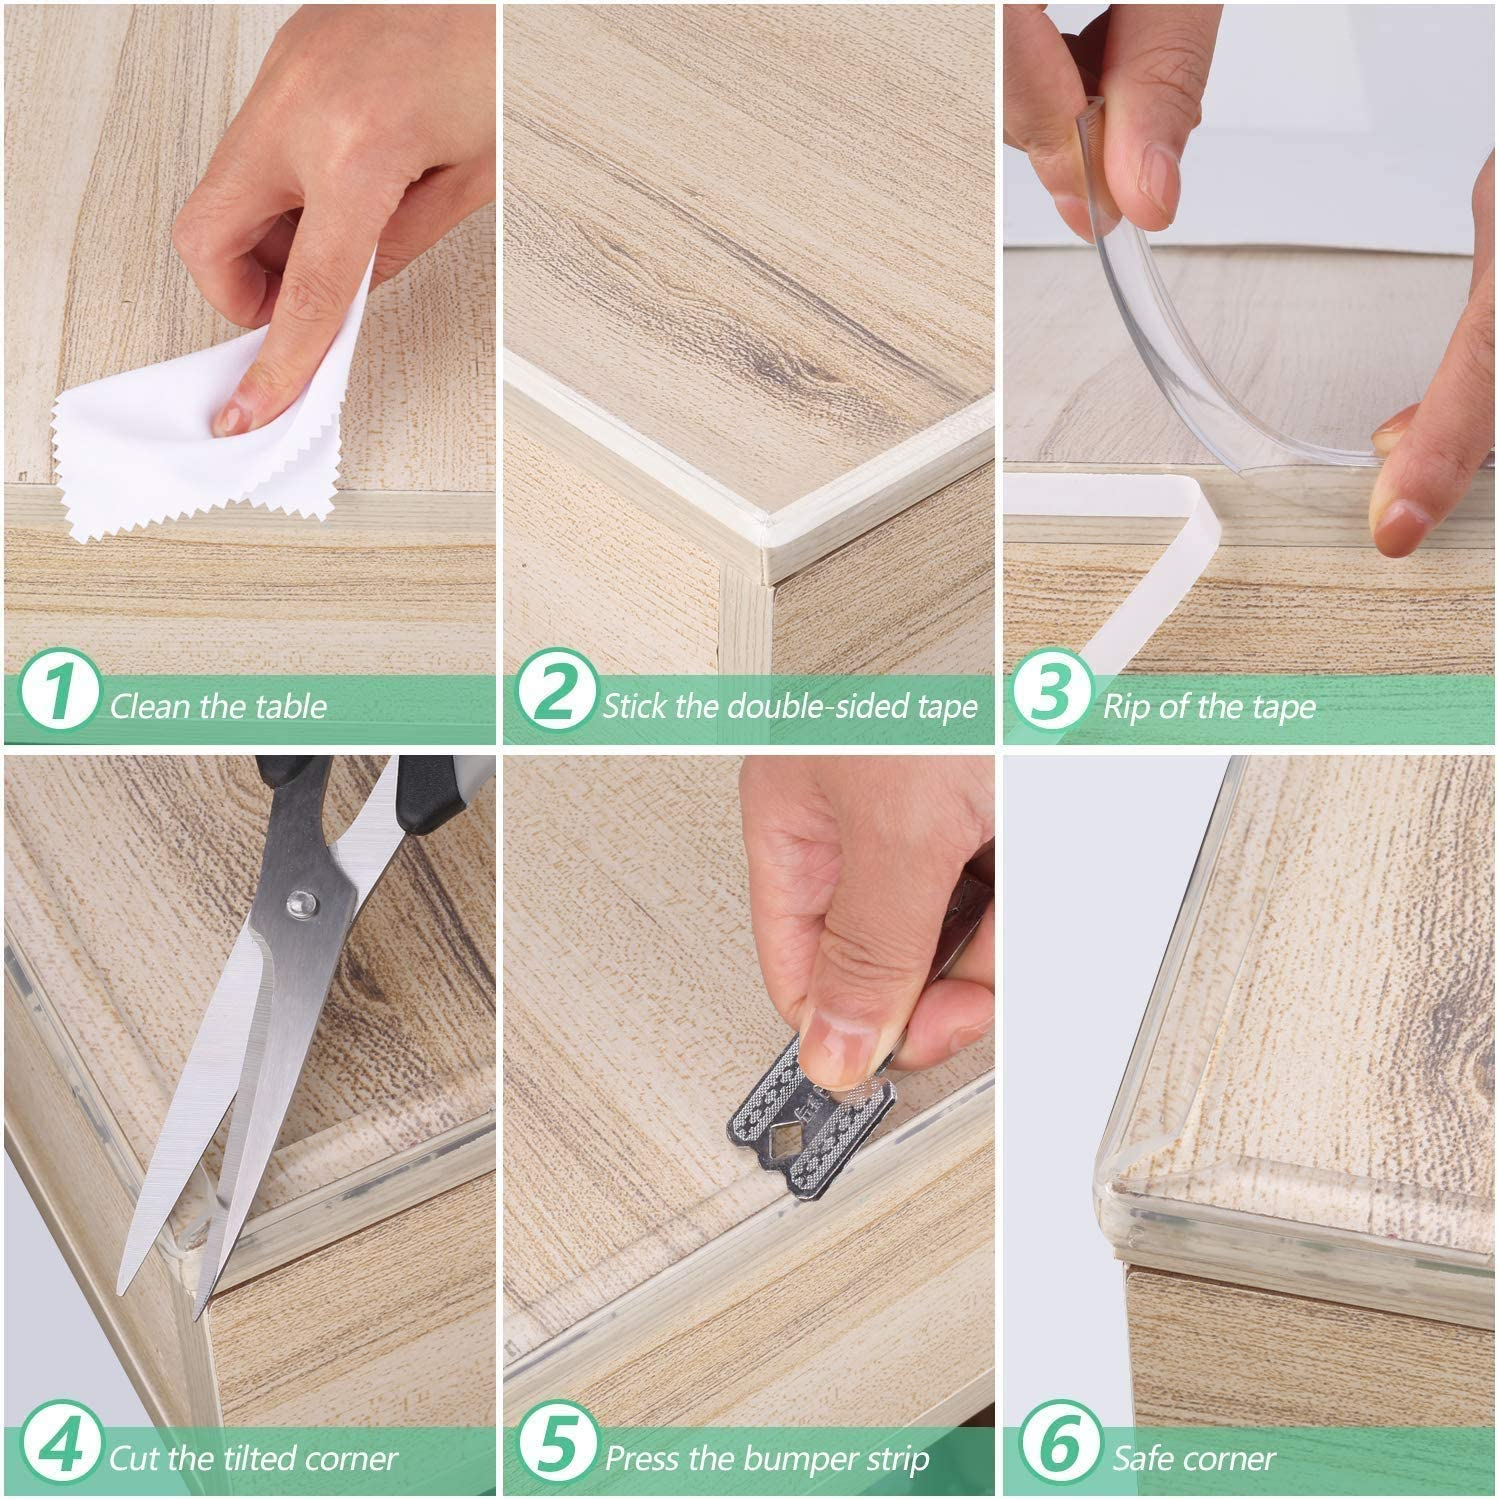 E-PROUSE Baby Furniture Table Edge Protectors 3M//10FT Corner Protectors Strip 4 Pack Corner Protectors for Cabinets,Tables